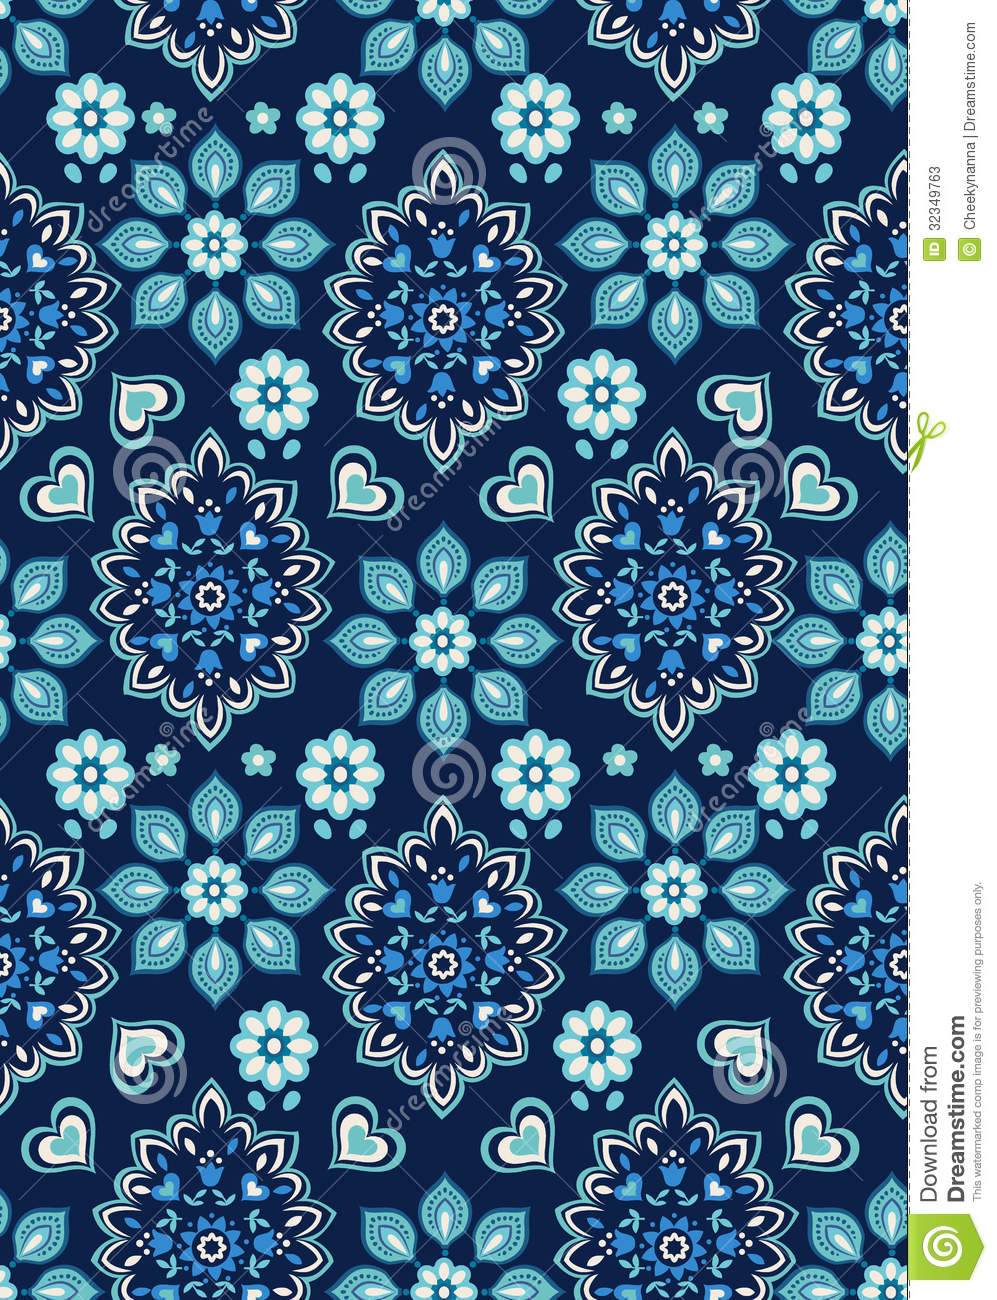 Free Download Pretty Blue Flower Backgrounds Flower Print